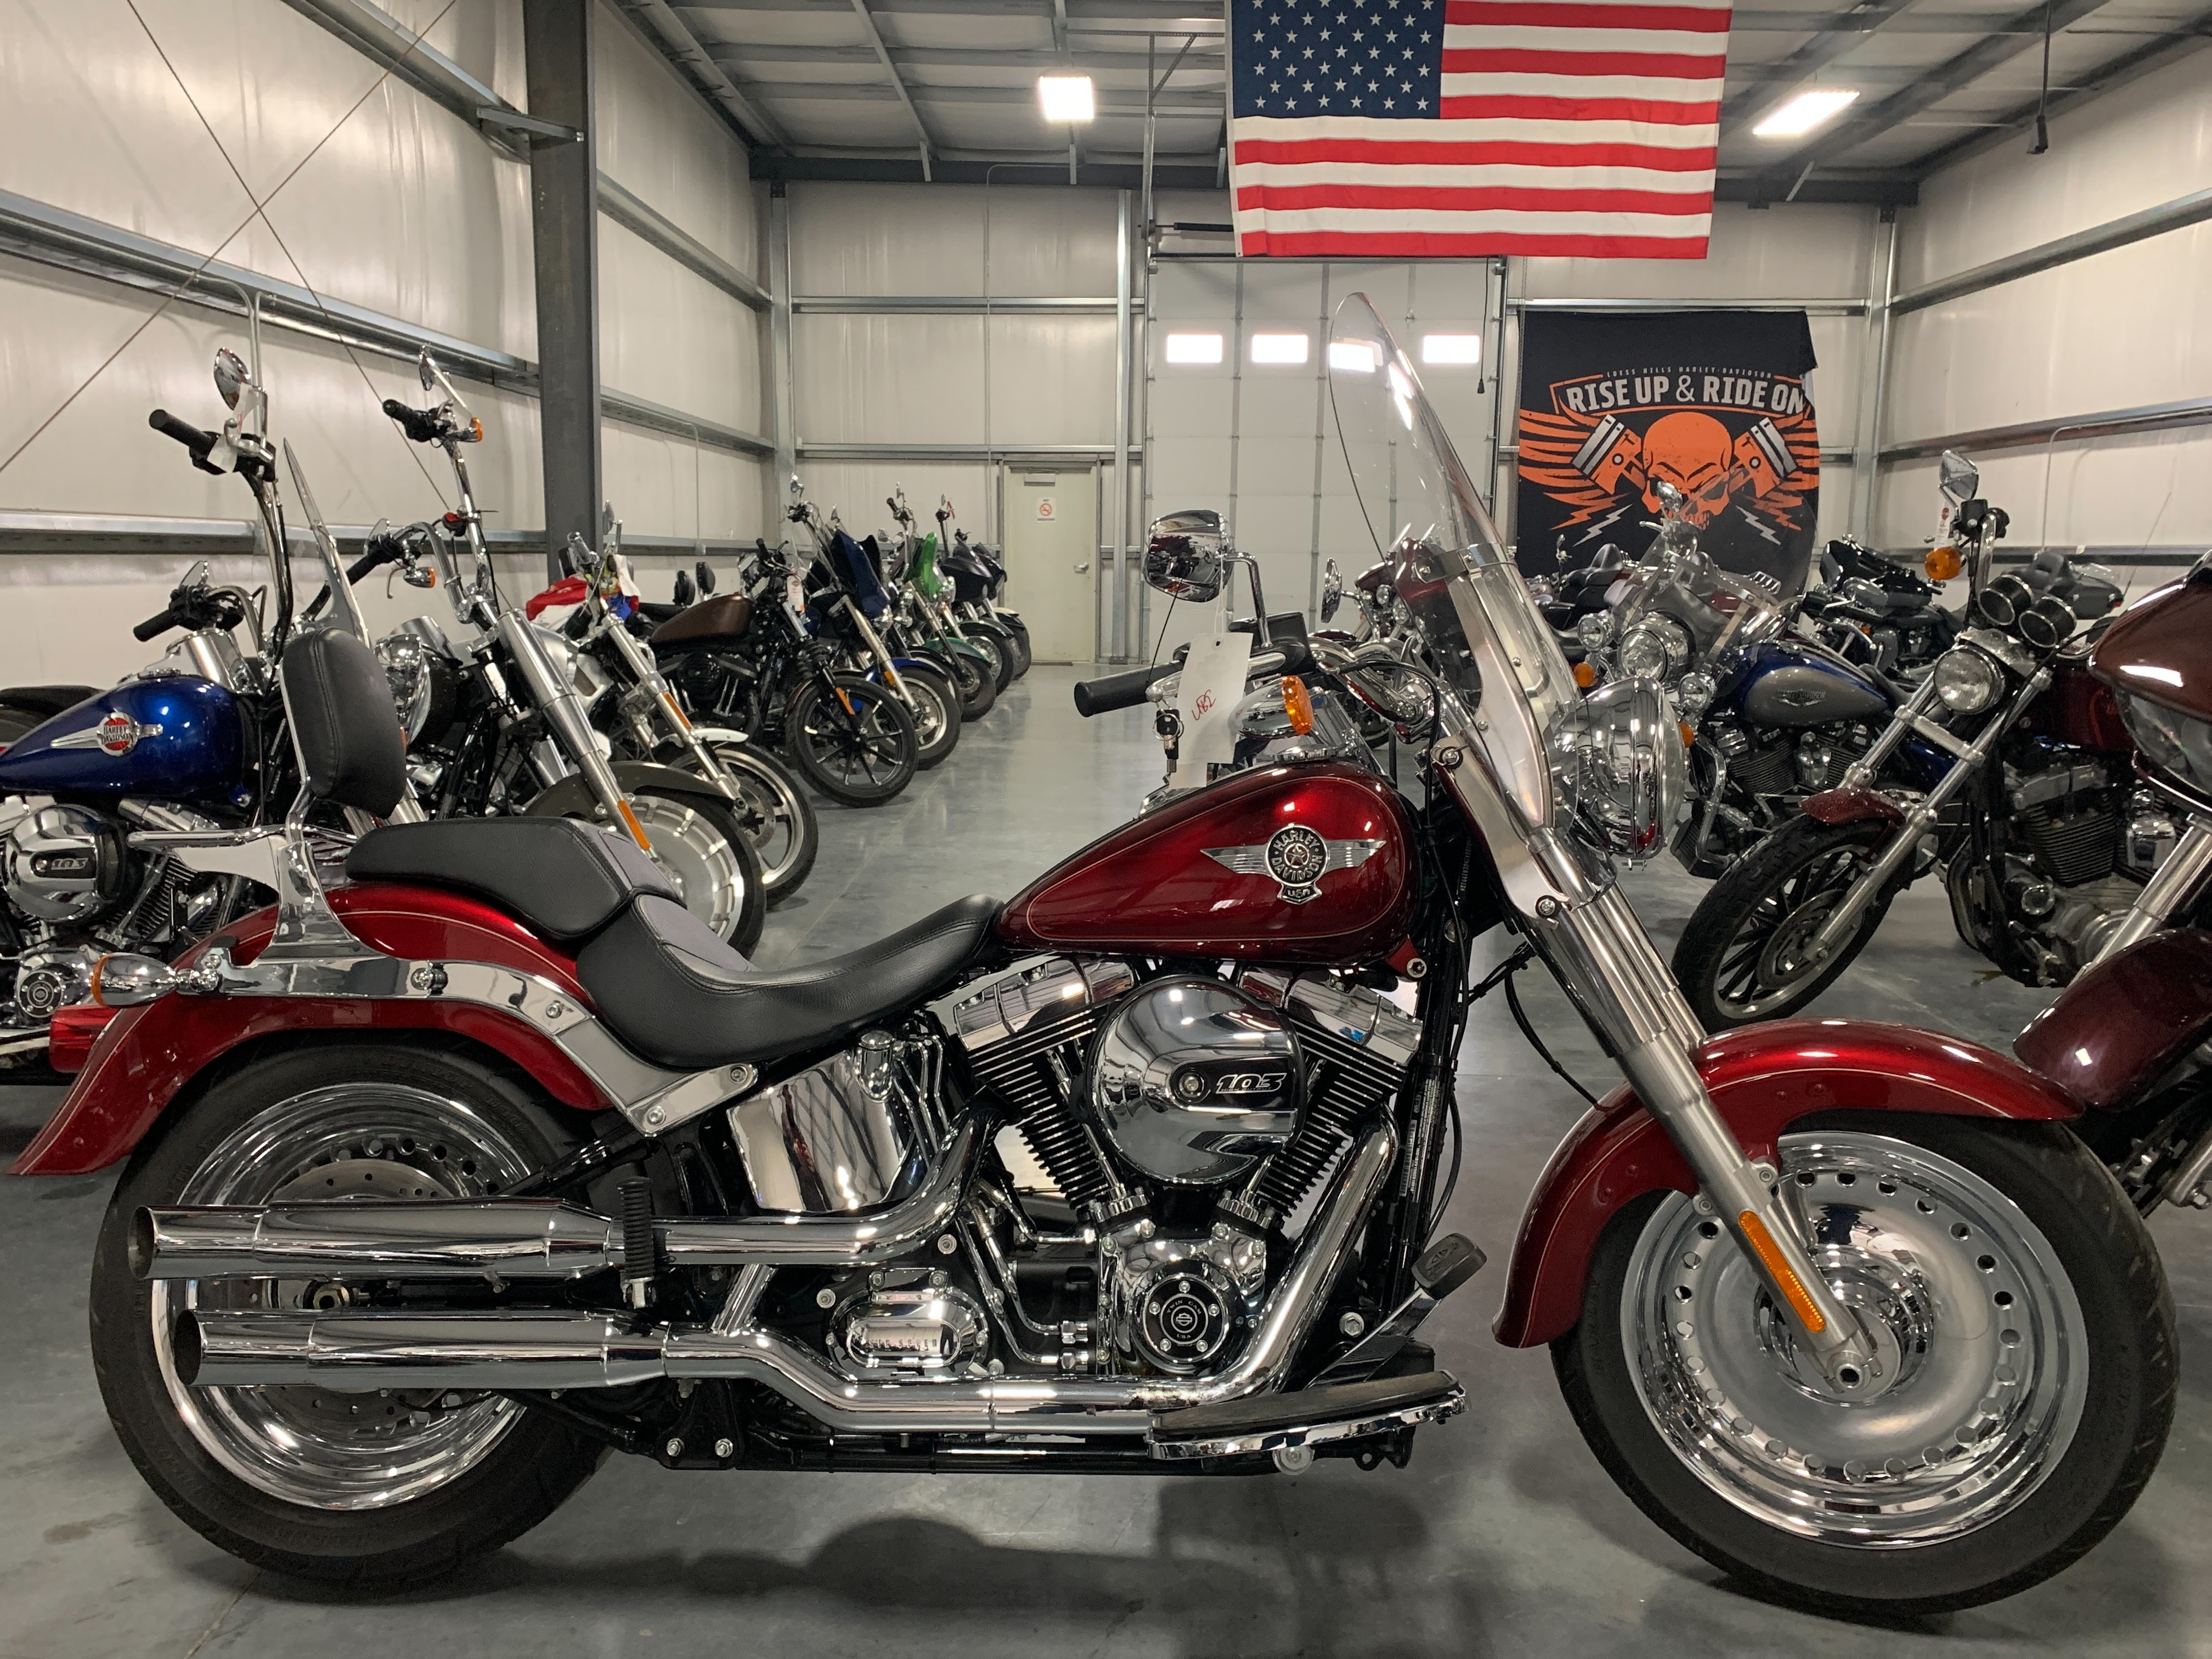 2016 Harley-Davidson Softail Fat Boy at Loess Hills Harley-Davidson